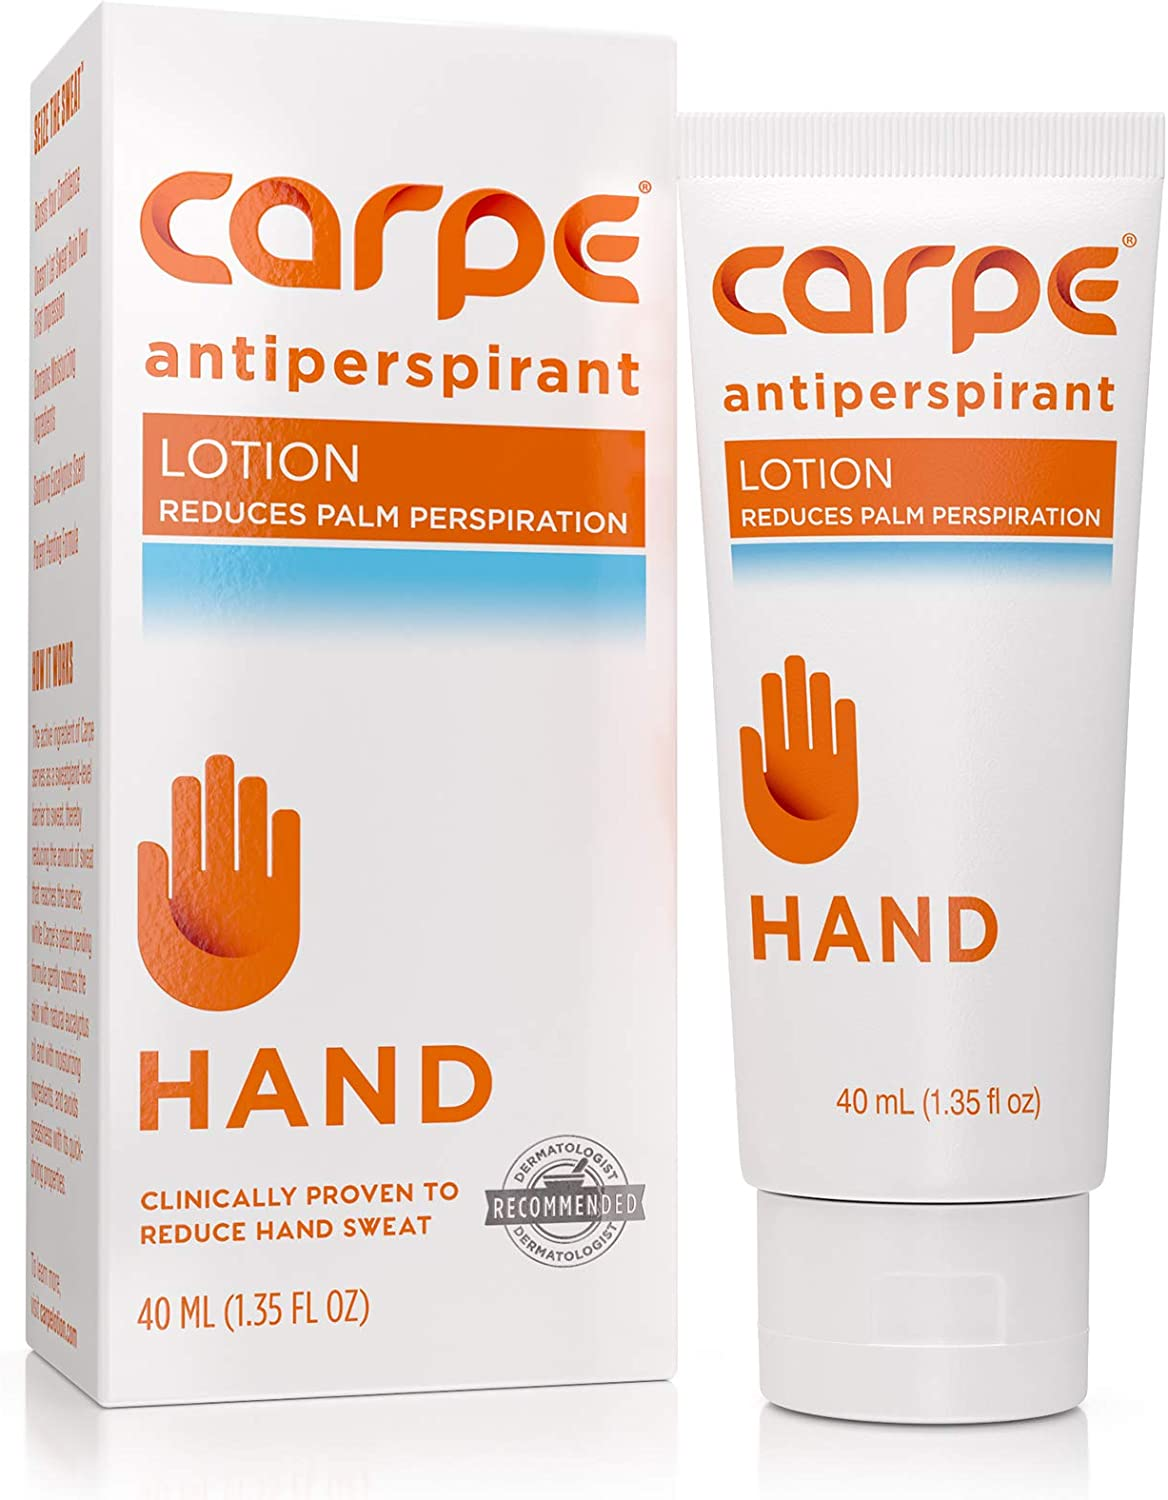 Carpe Antiperspirant Hand Lotion, A dermatologist-recommended, non-irritating, smooth lotion that helps stops hand sweat, Great for hyperhidrosis : Beauty